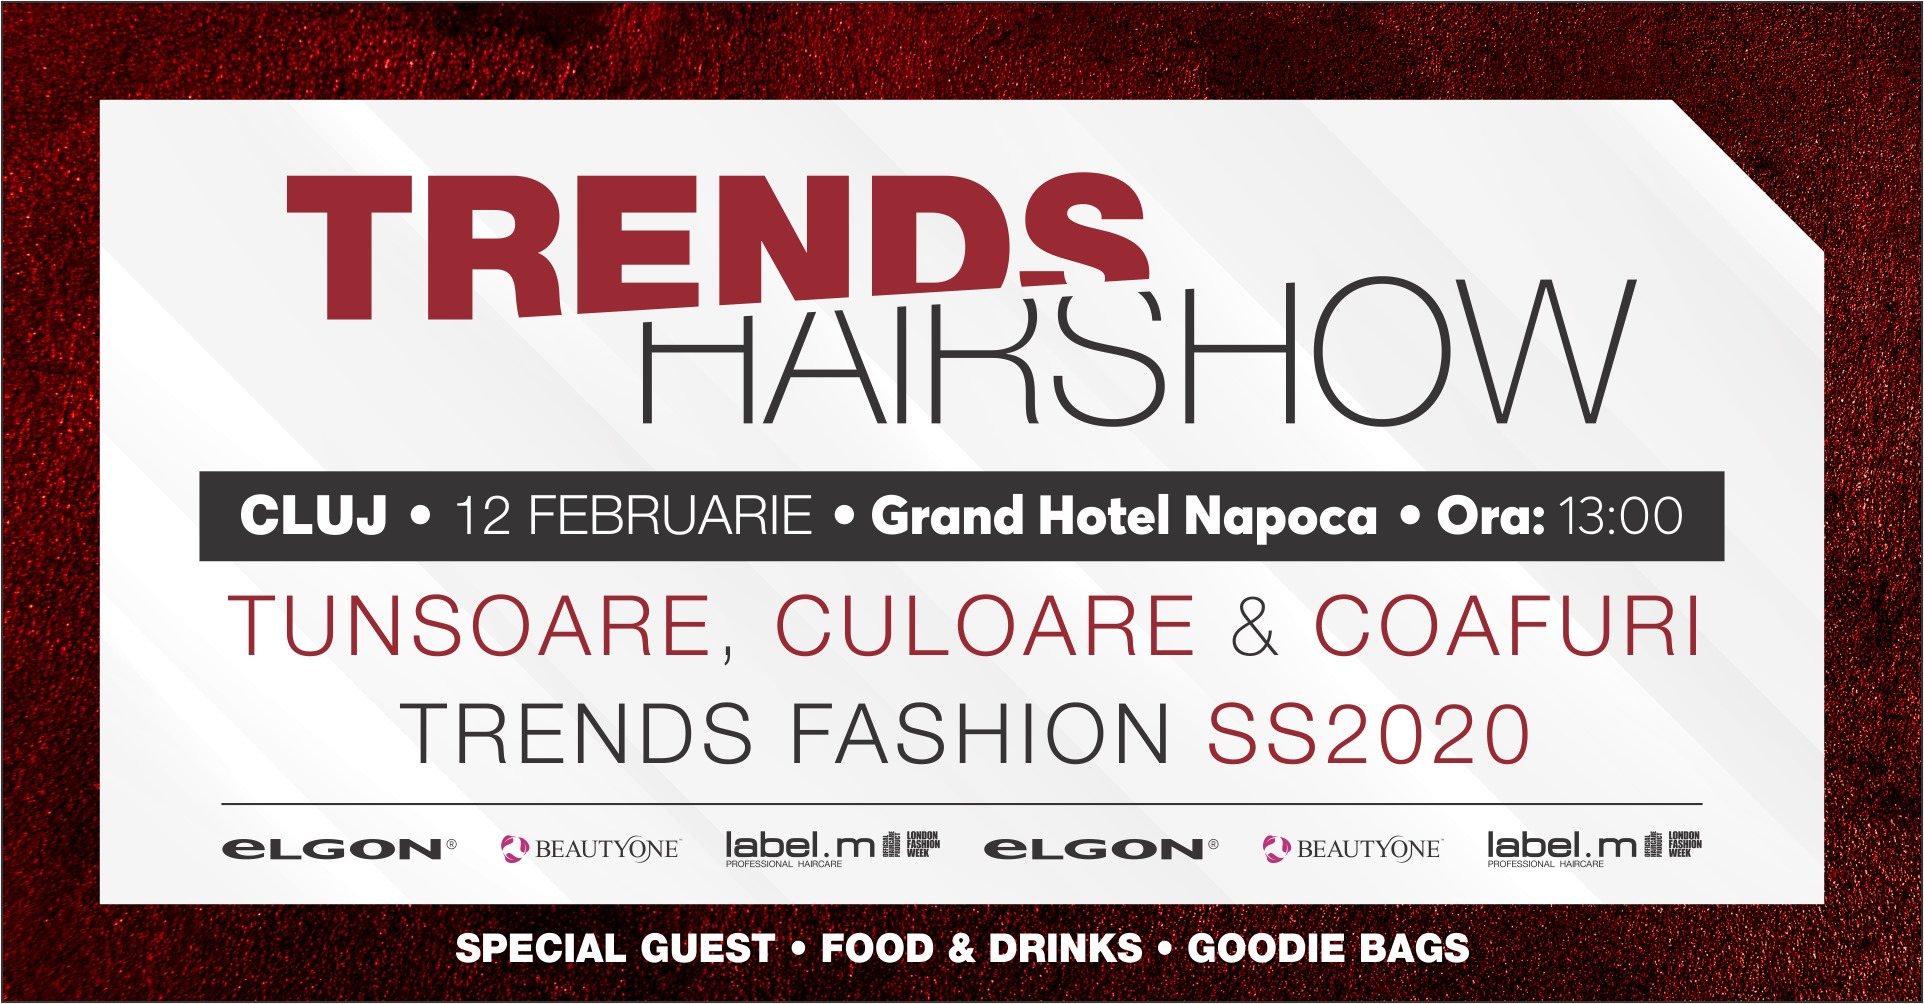 Trends Hairshow